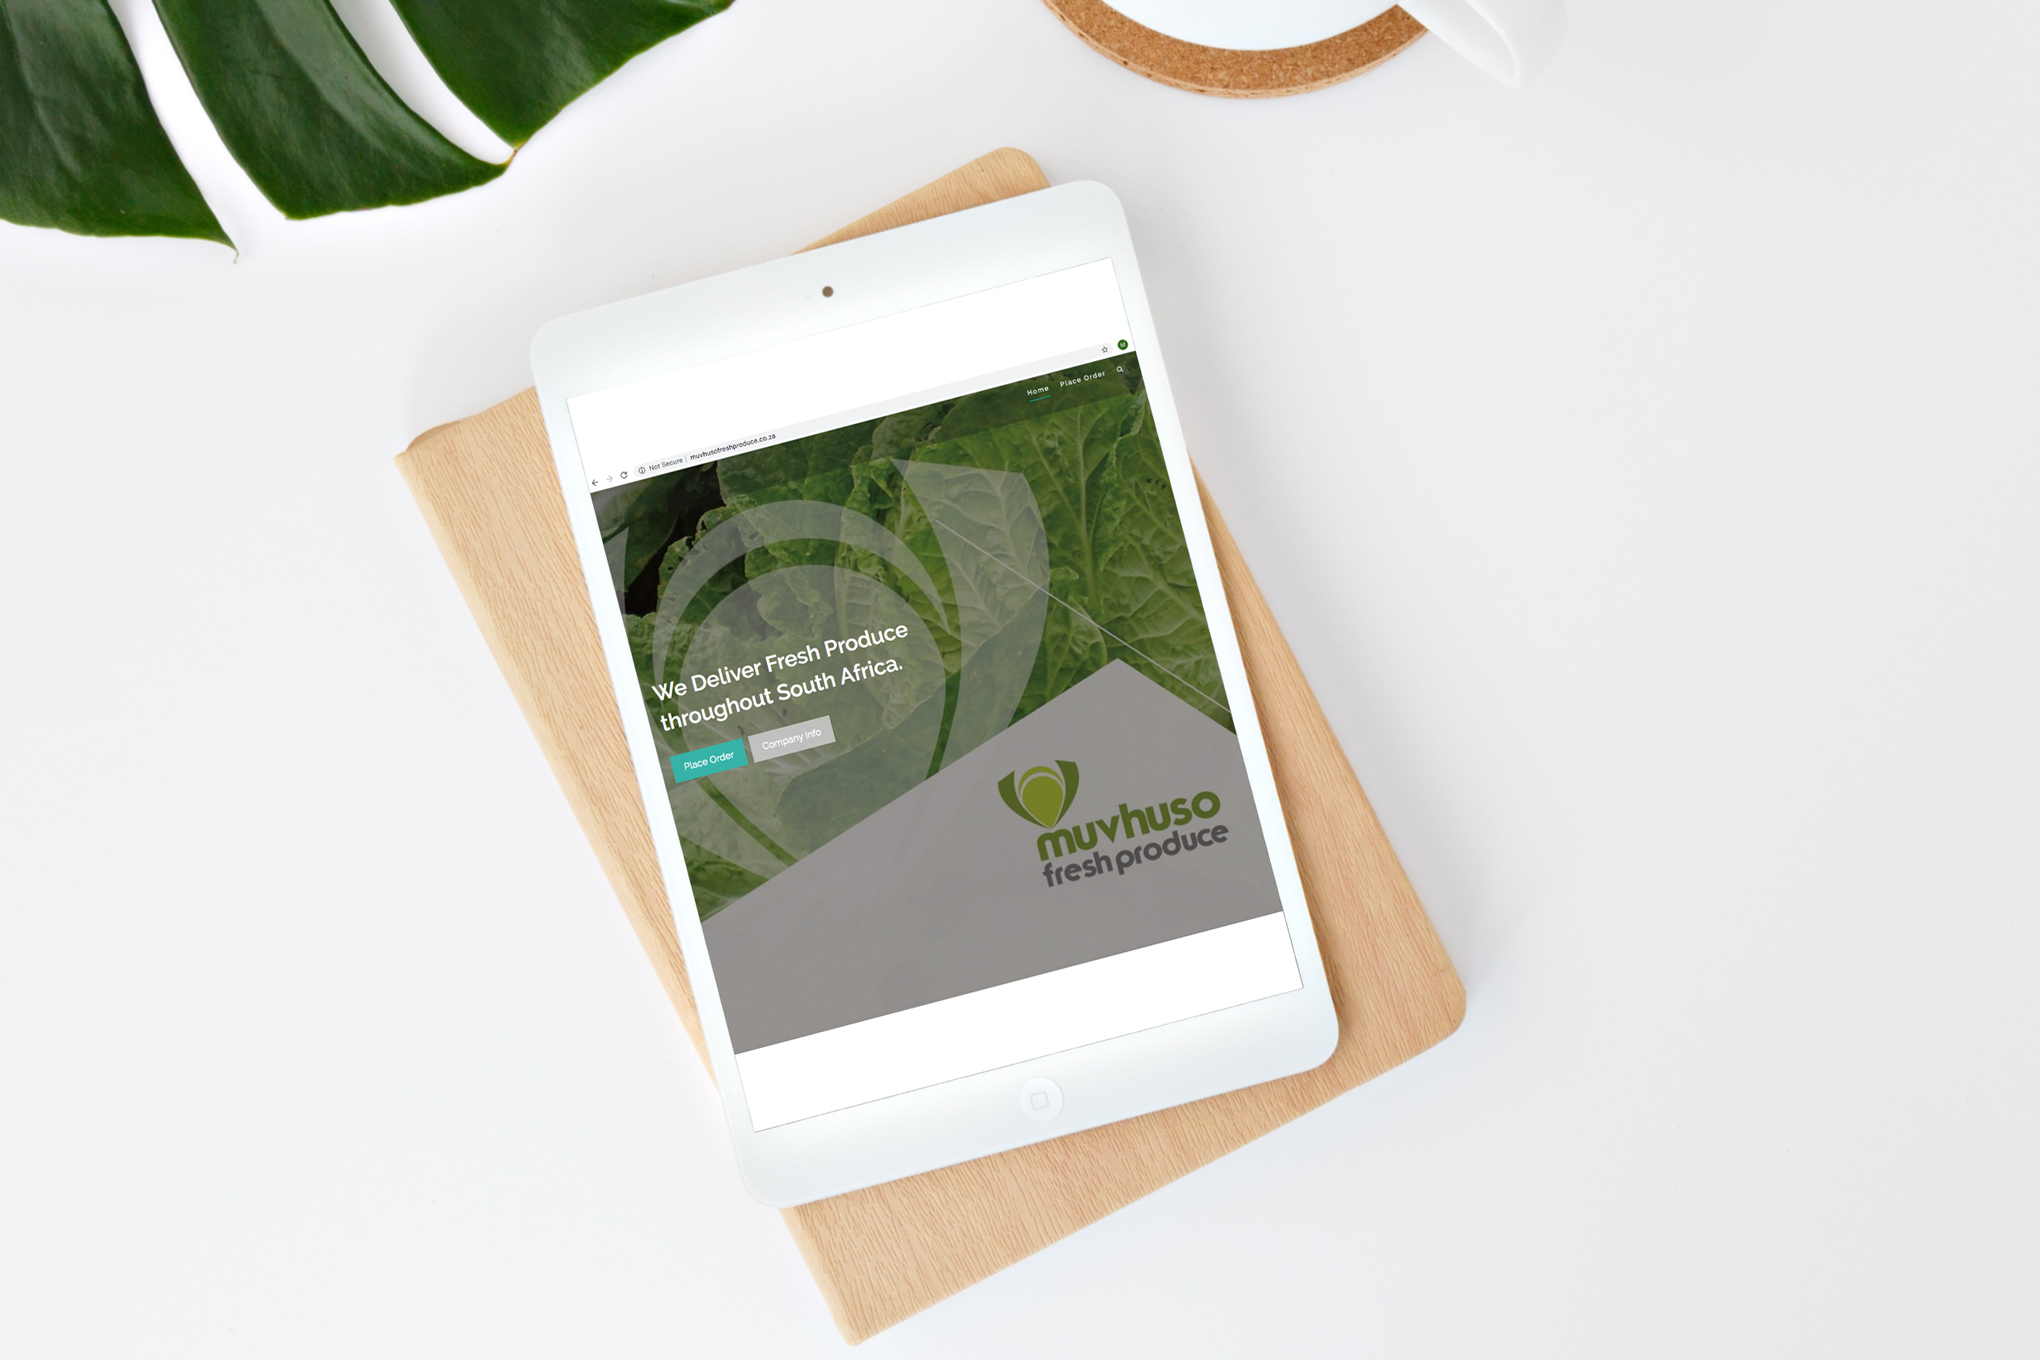 Muvhuso-Fresh-Produce-Website-on-tablet